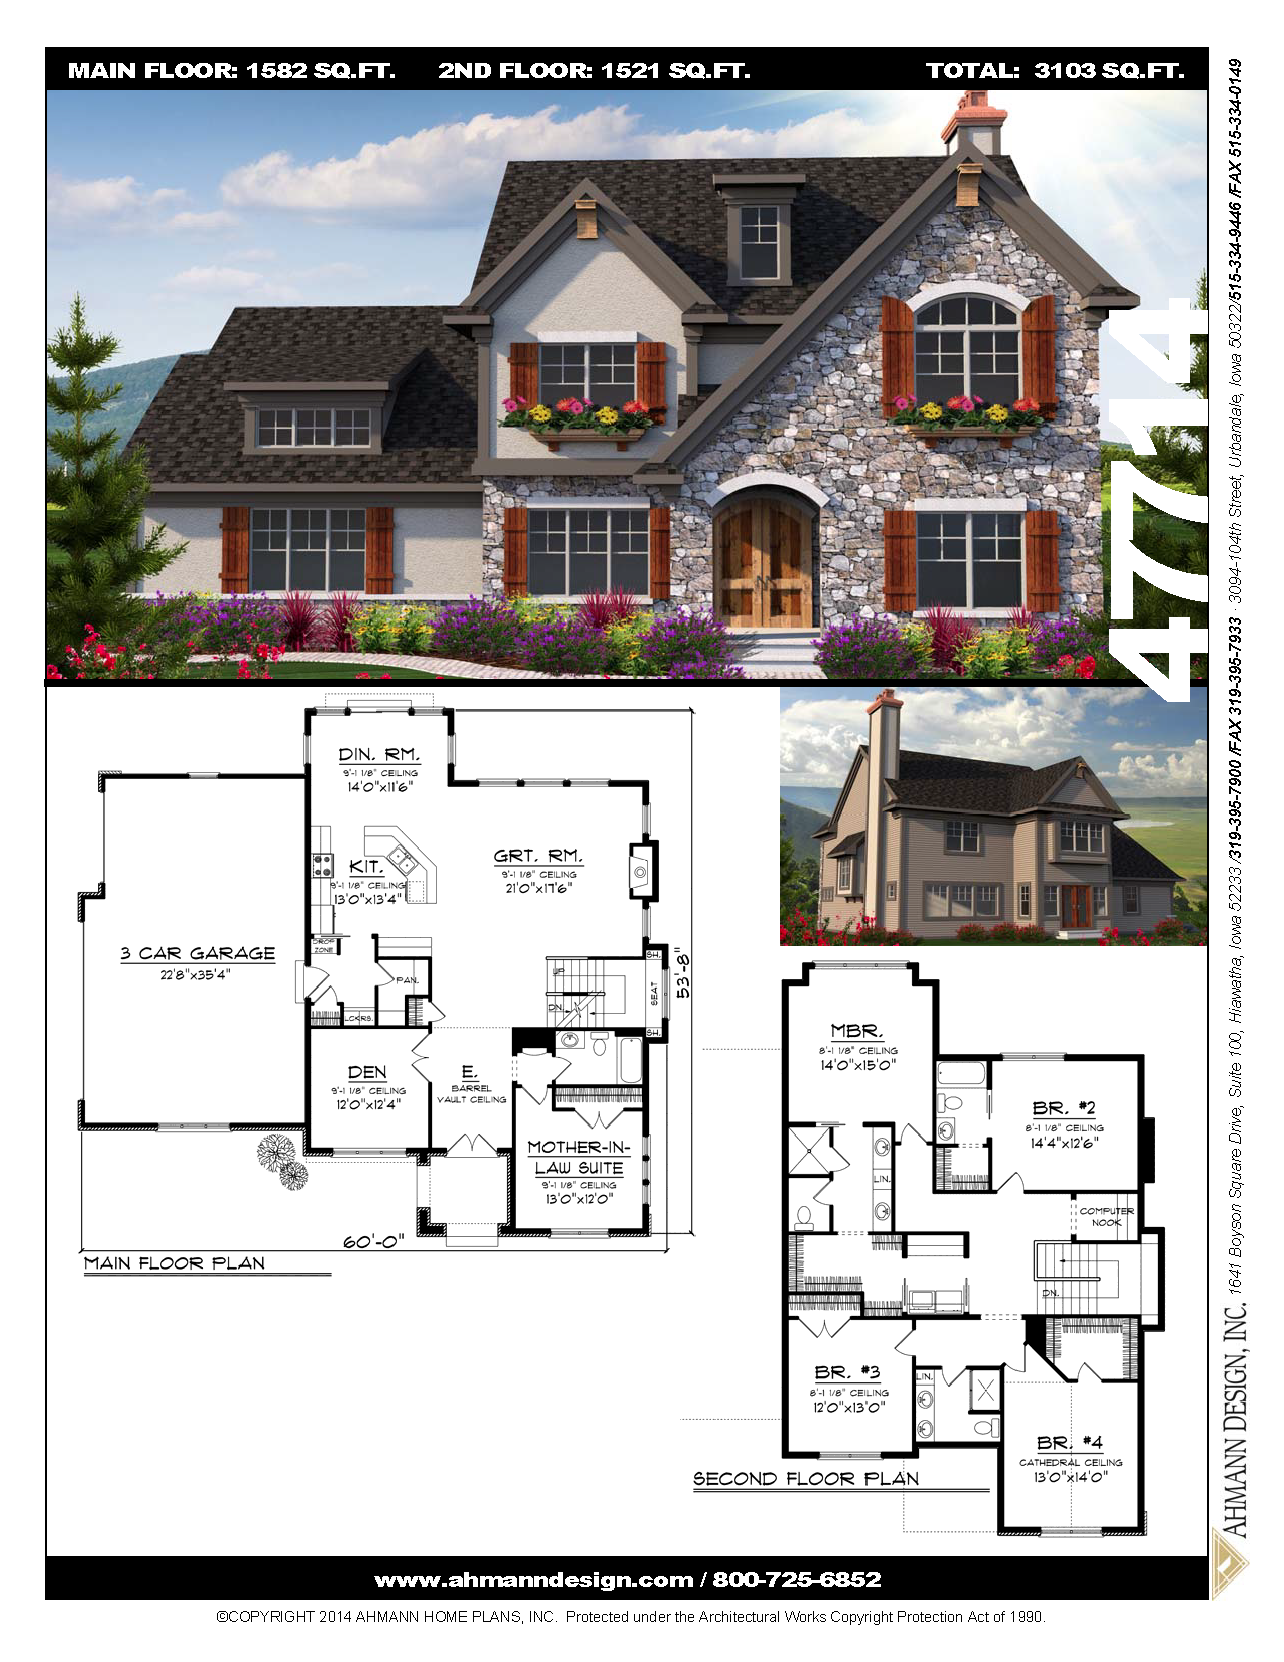 47714 Ahmann Design Plan 47714 Inspired By The English Tudor Home Of Years Gone By This Two Story Charmer Is In 2020 Family House Plans Sims House Plans House Plans